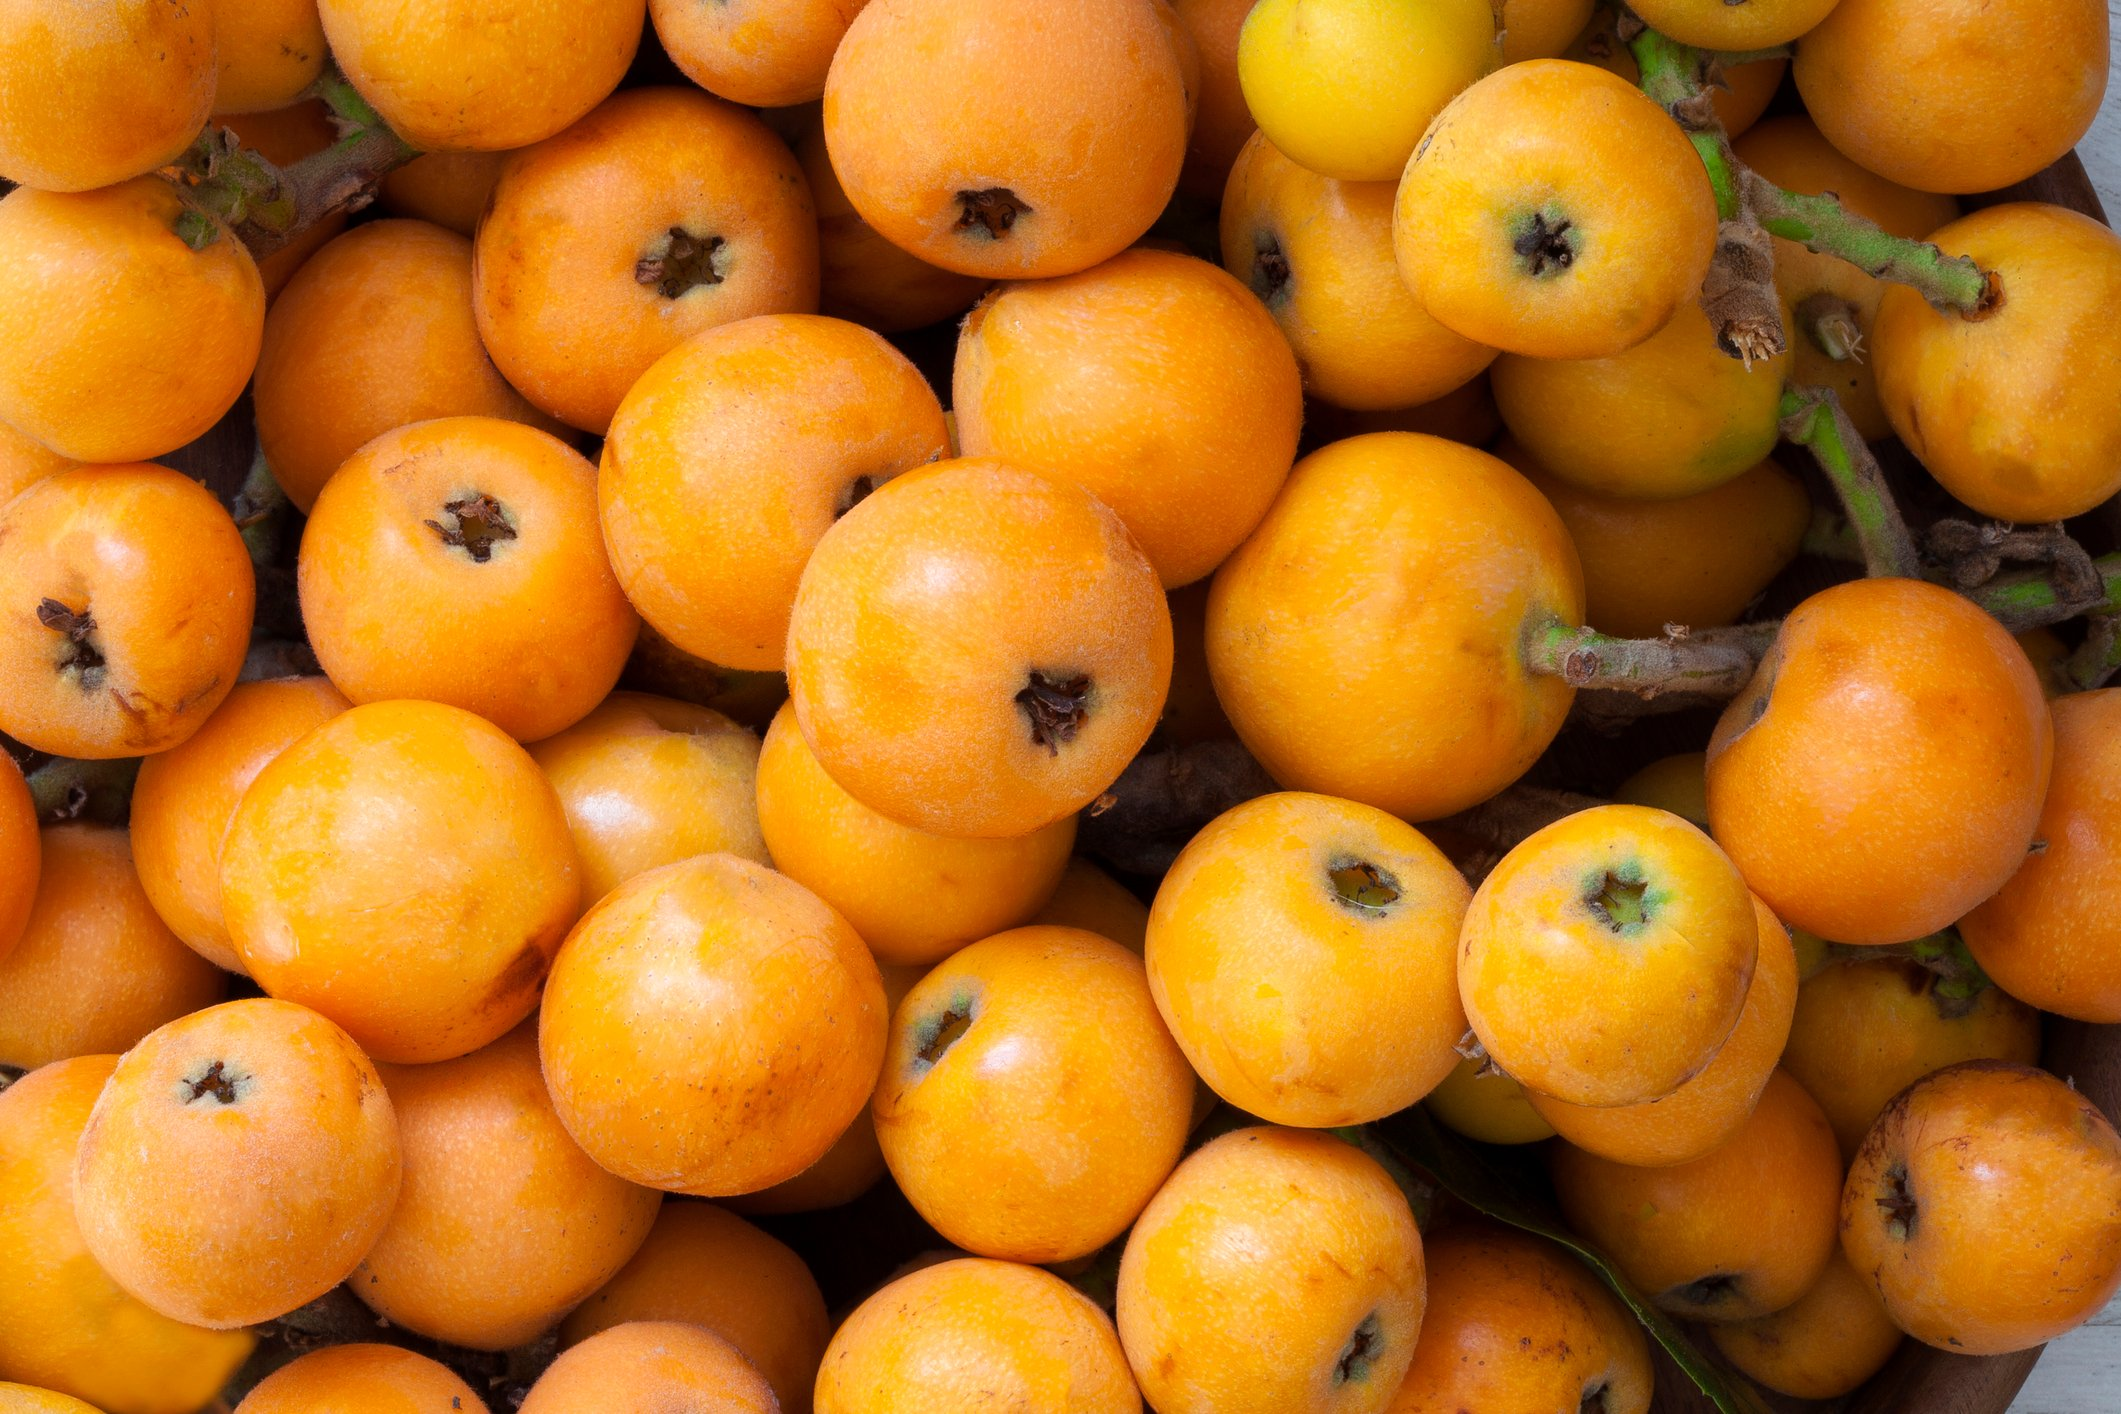 Turks will often get out of their cars and pick fresh loquats if they see them on the roadside. (iStock Photo)